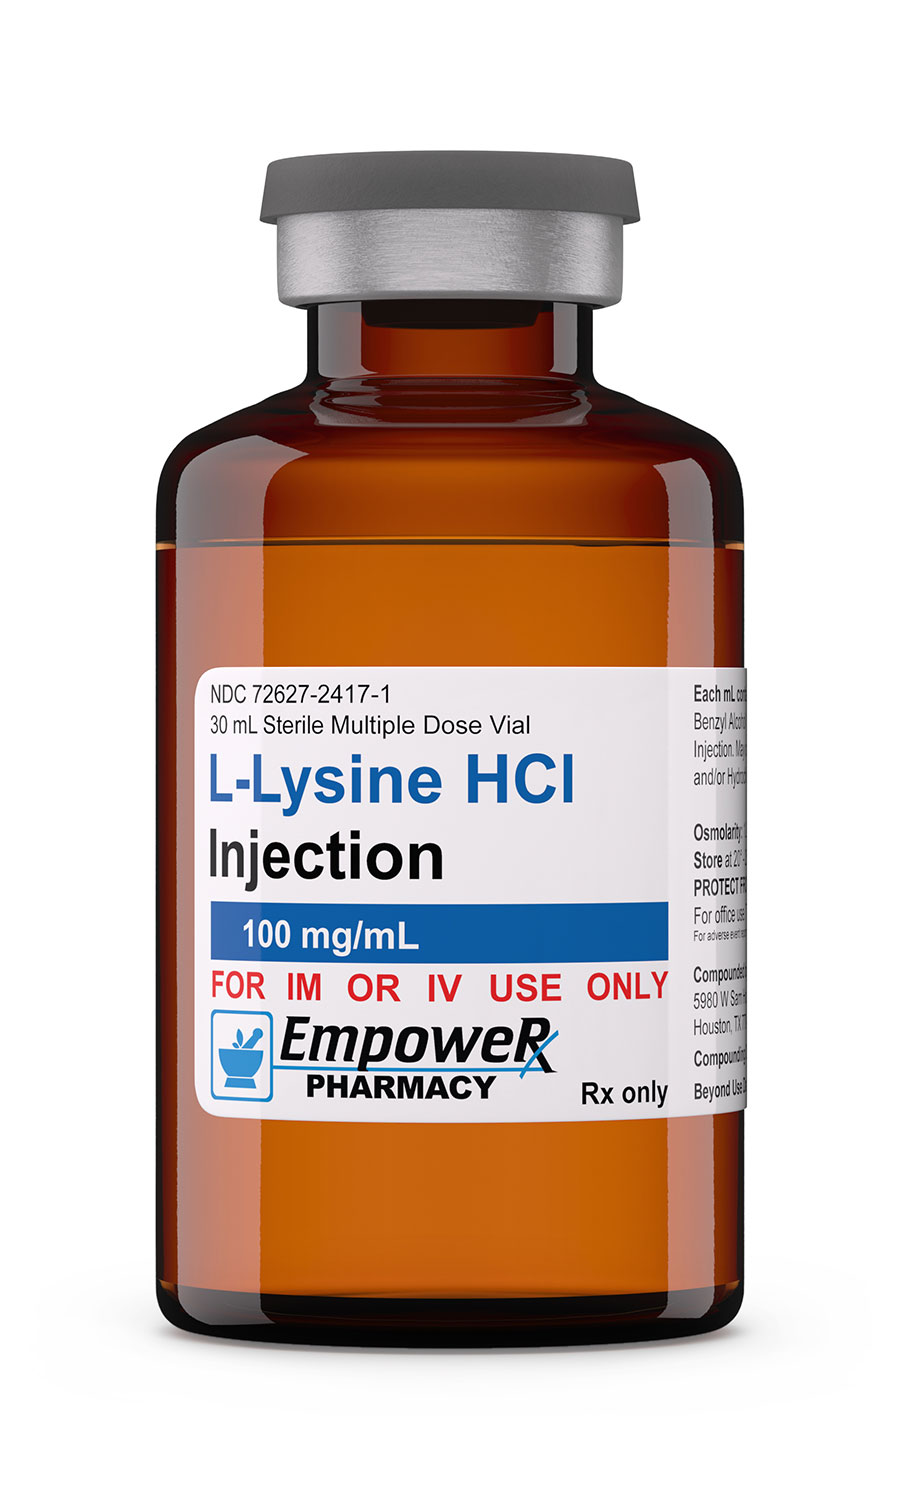 L-Lysine-HCl-Injection